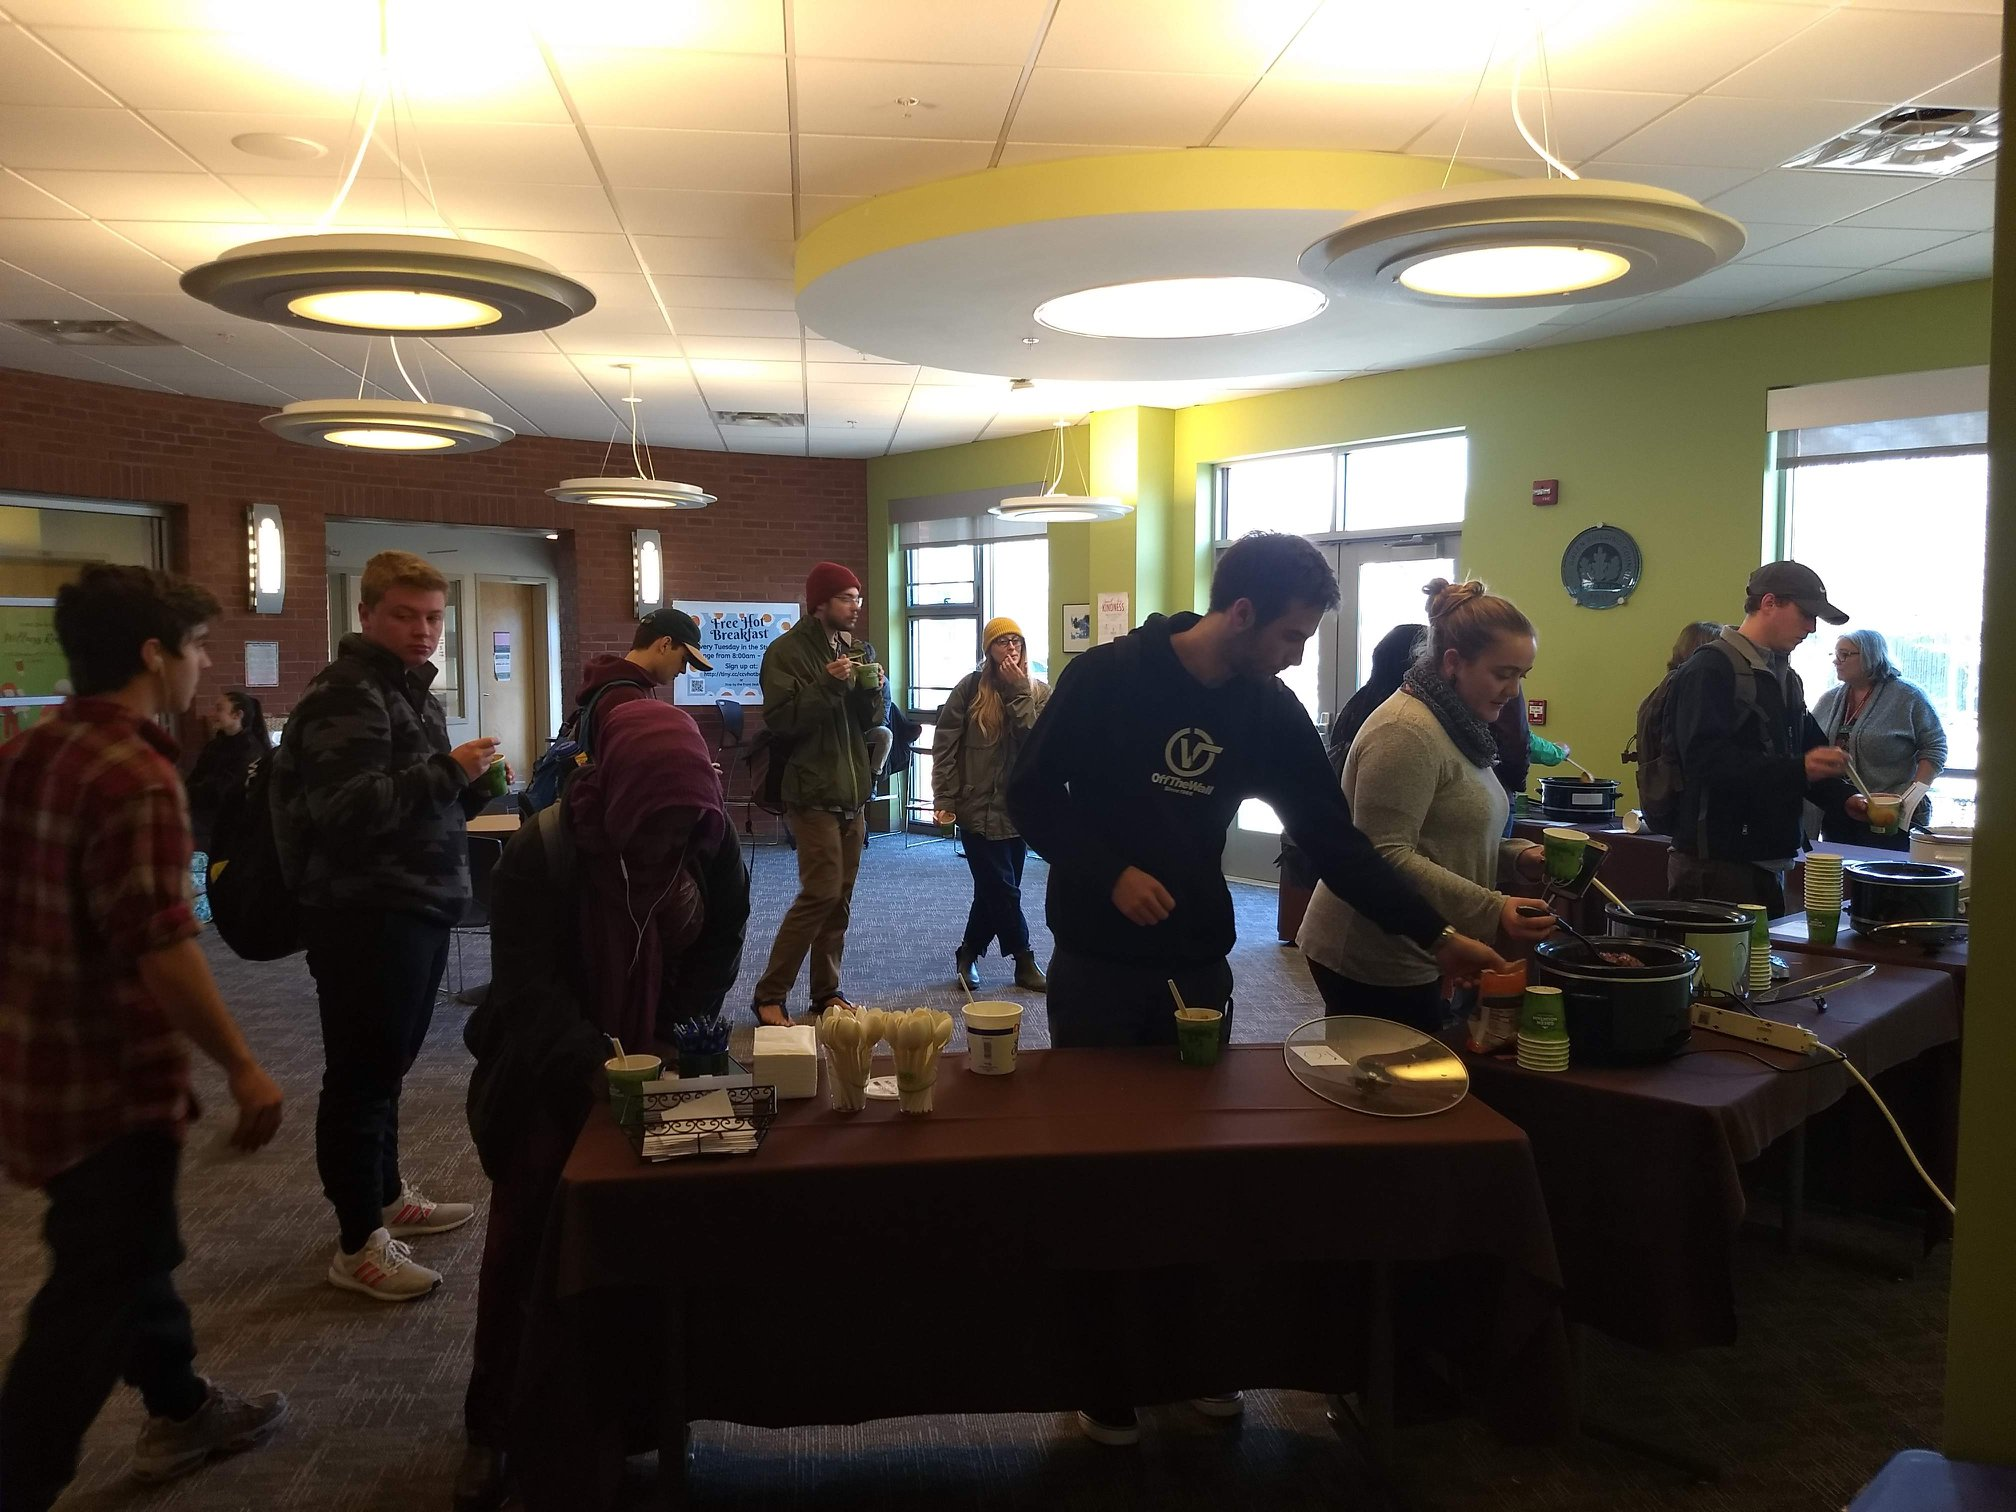 CCV-Winooski held its first annual Chili Cook-off this week, in honor of winter's early arrival!